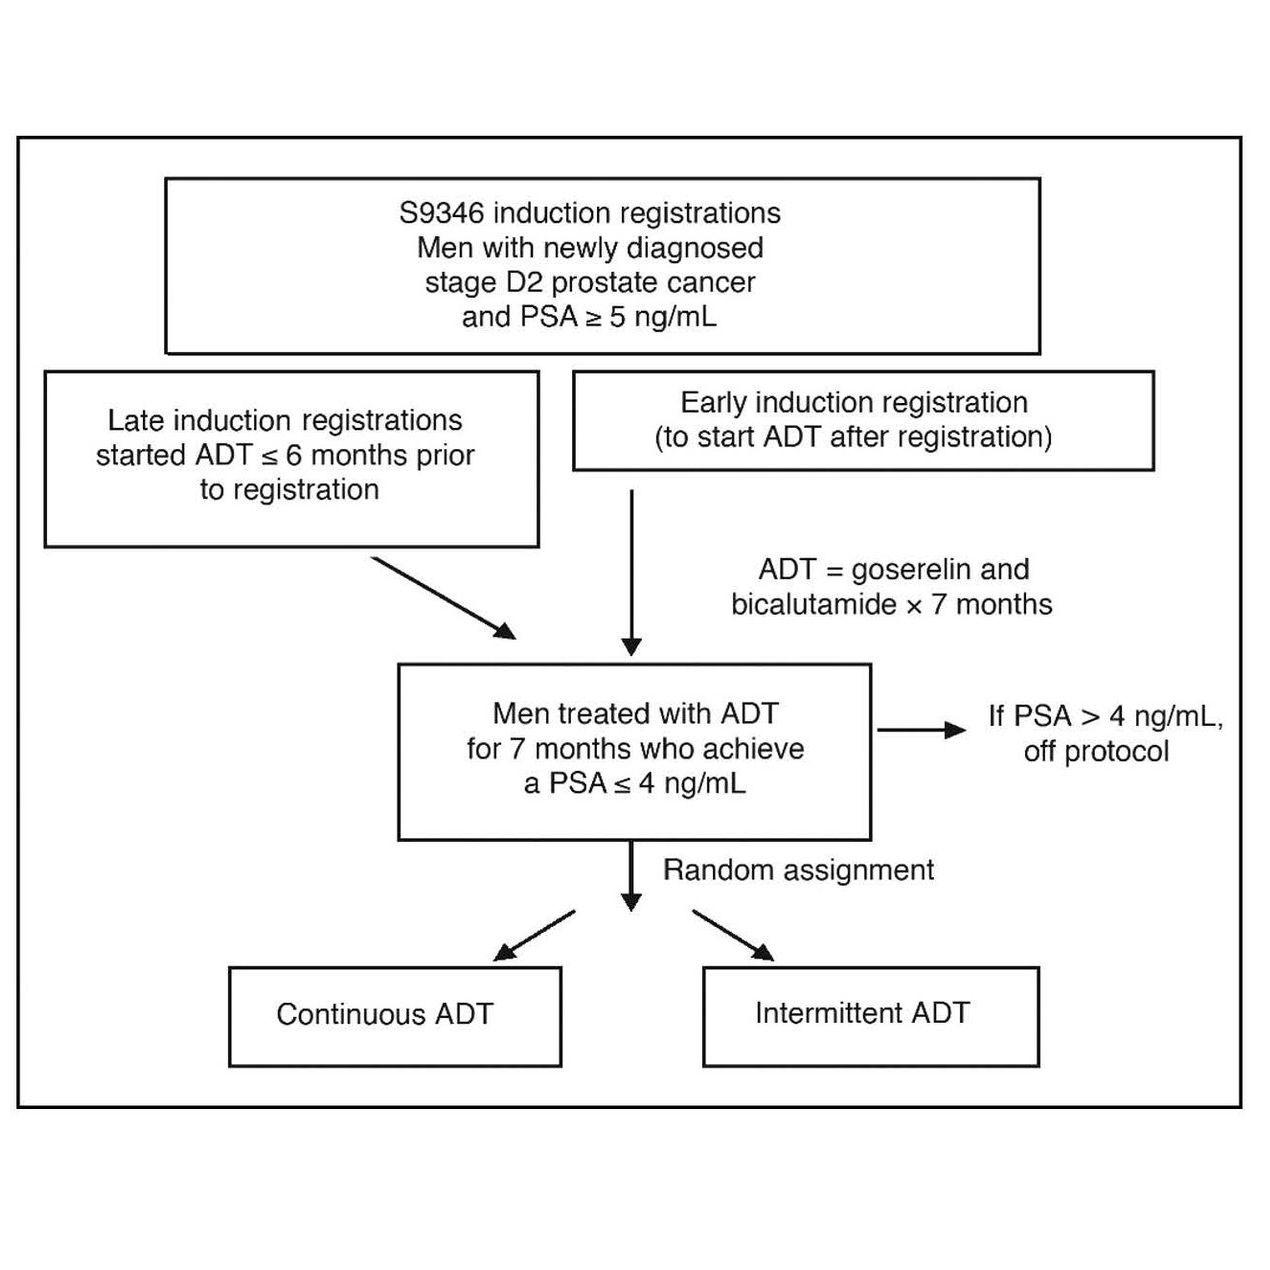 S9346 (INT- 0162) study schema. D2, metastatic; PSA, prostate-specific antigen; ADT, androgen-deprivation therapy.